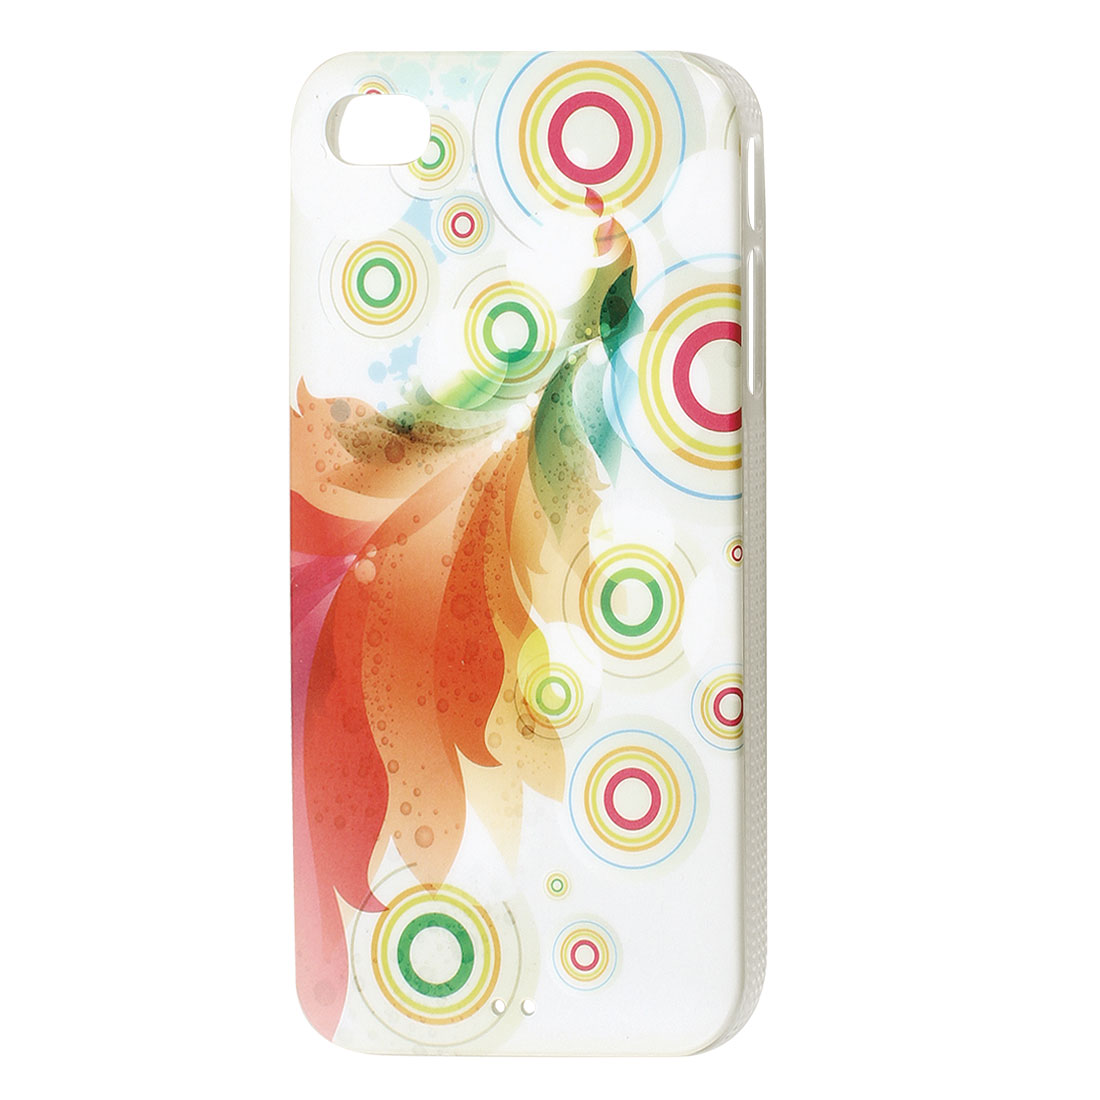 Phoenix Circle Pattern Hard Back Case Cover for iPhone 4 4G 4S 4GS 4th Gen